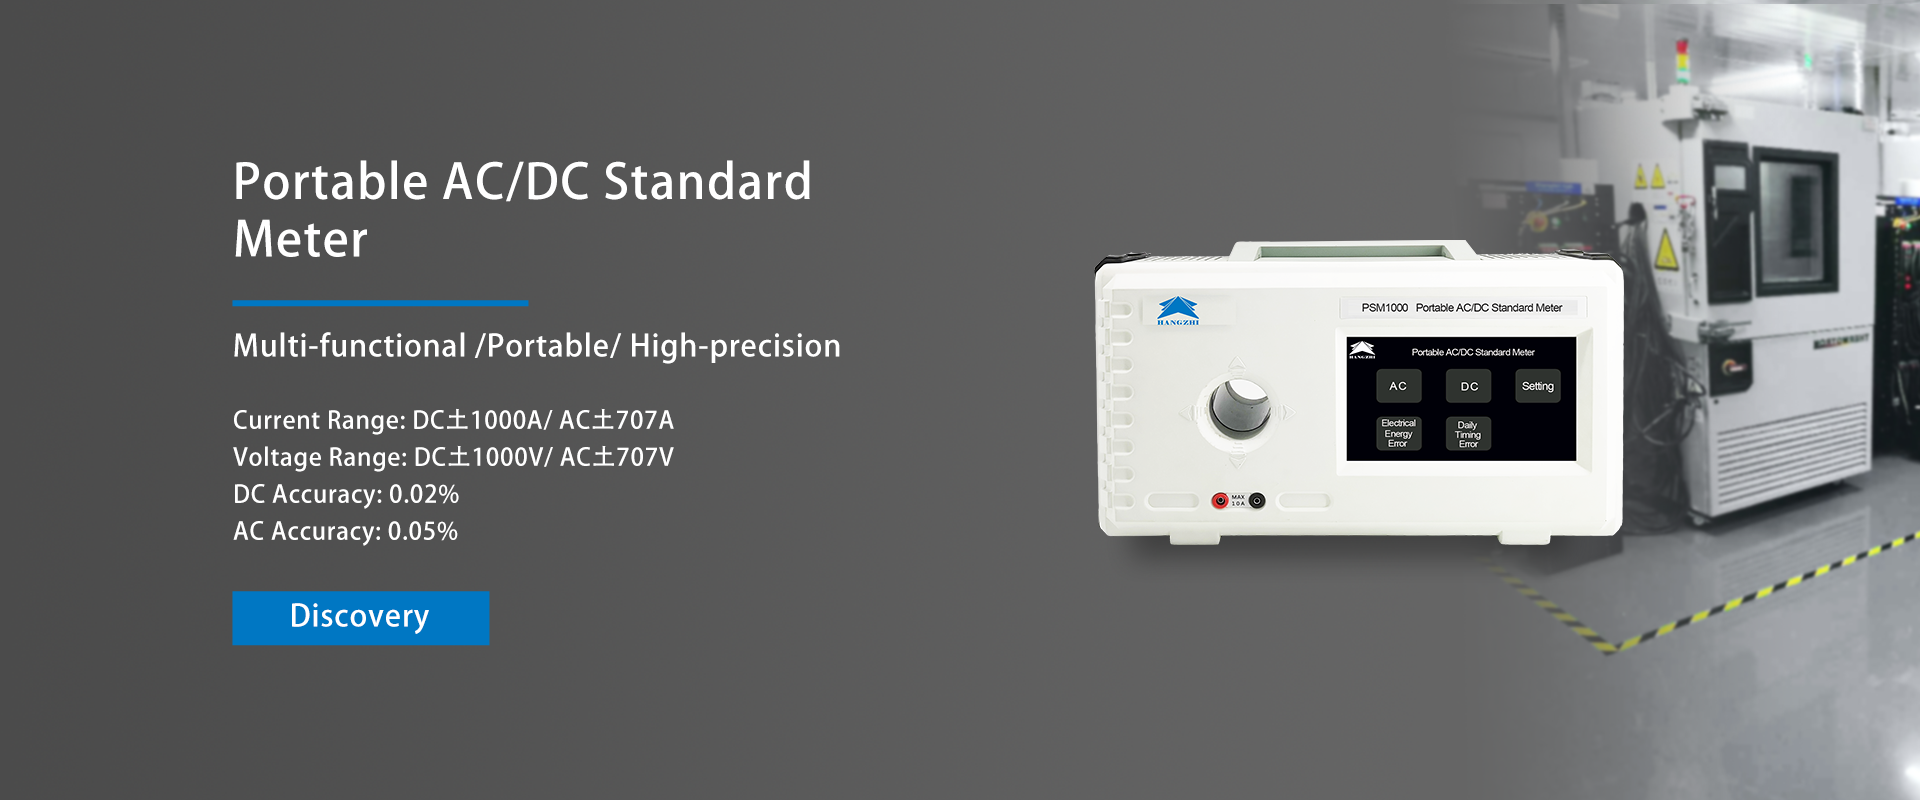 Portable AC and DC standard meter